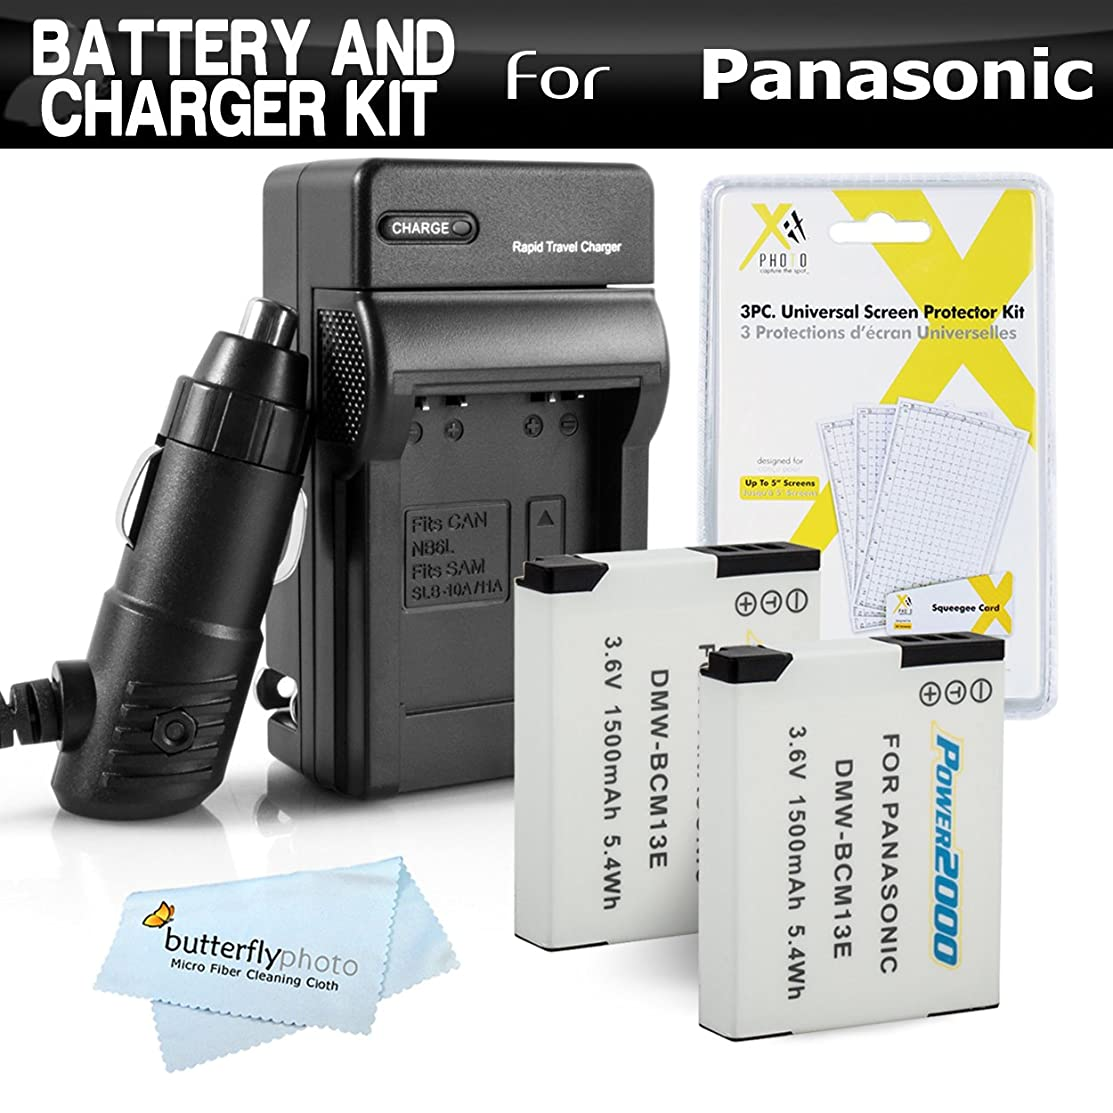 2 Pack Battery and Charger Kit for Panasonic Lumix ZS50, DMC-ZS45K, DMC-ZS40K, DMC-ZS40S, DMC-ZS35K, DMC-LZ40, DMC-LZ40k Includes 2 Replacement DMW-BCM13E Batteries + Charger + More